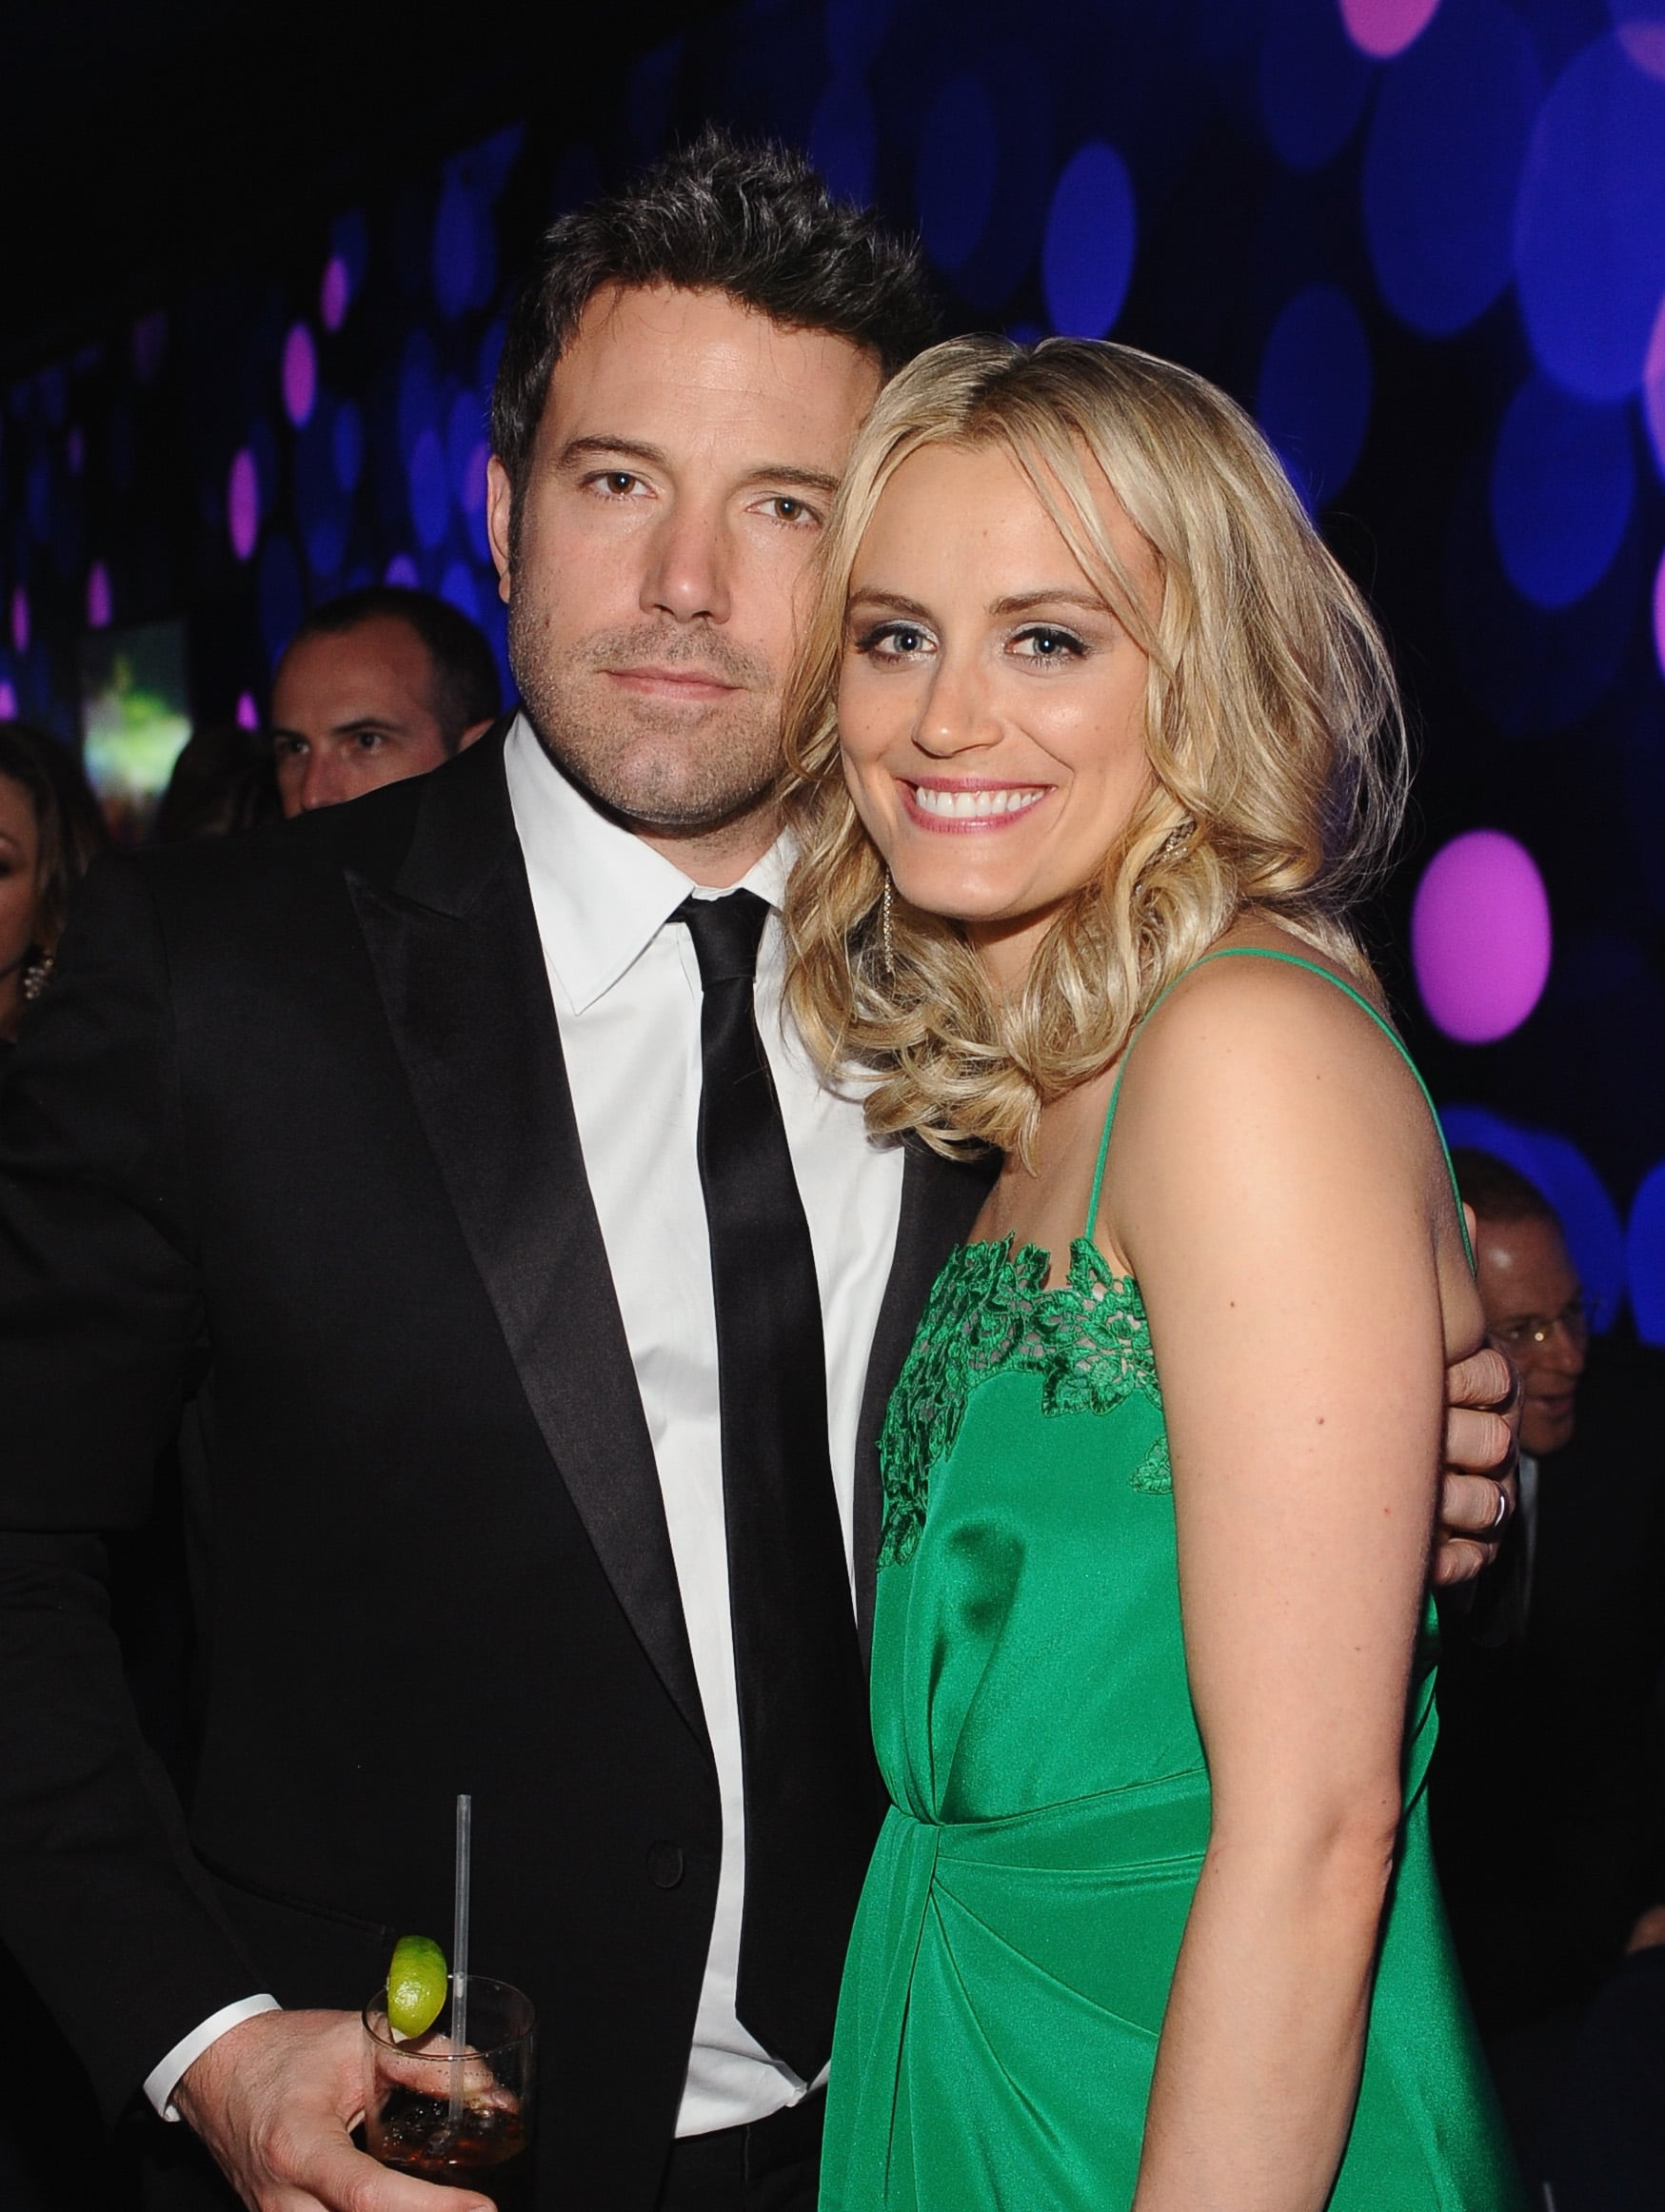 Taylor Schilling and Ben Affleck had an Argo reunion.